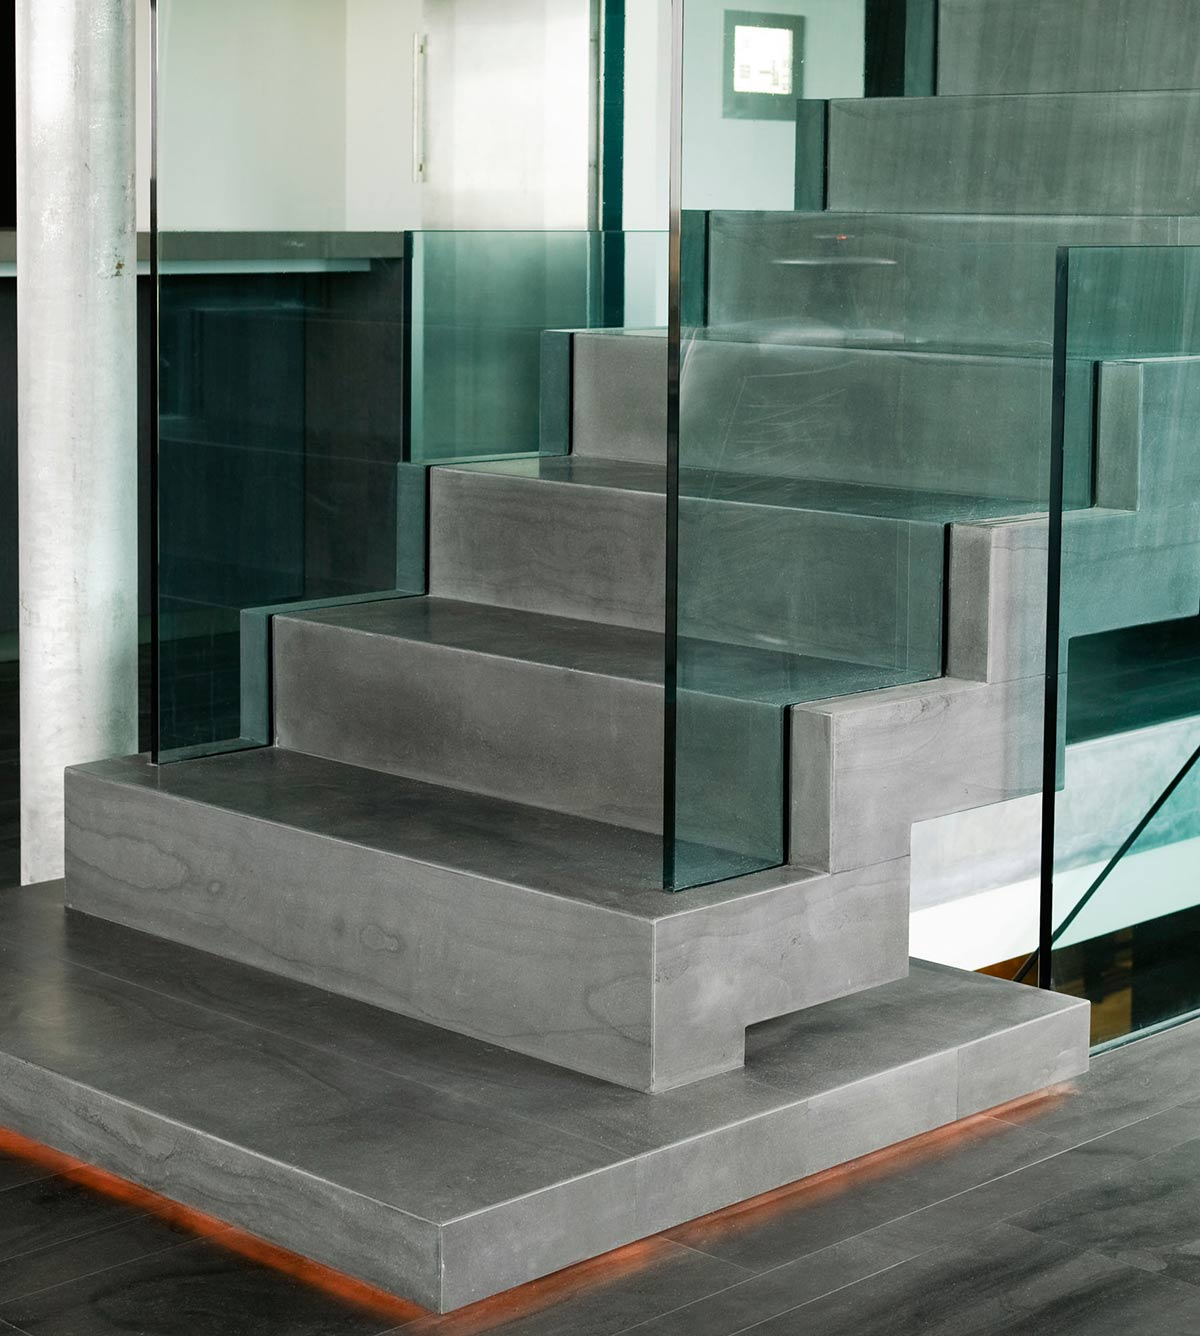 Stairs, Vacation Home in Iceland Inspired by Nature